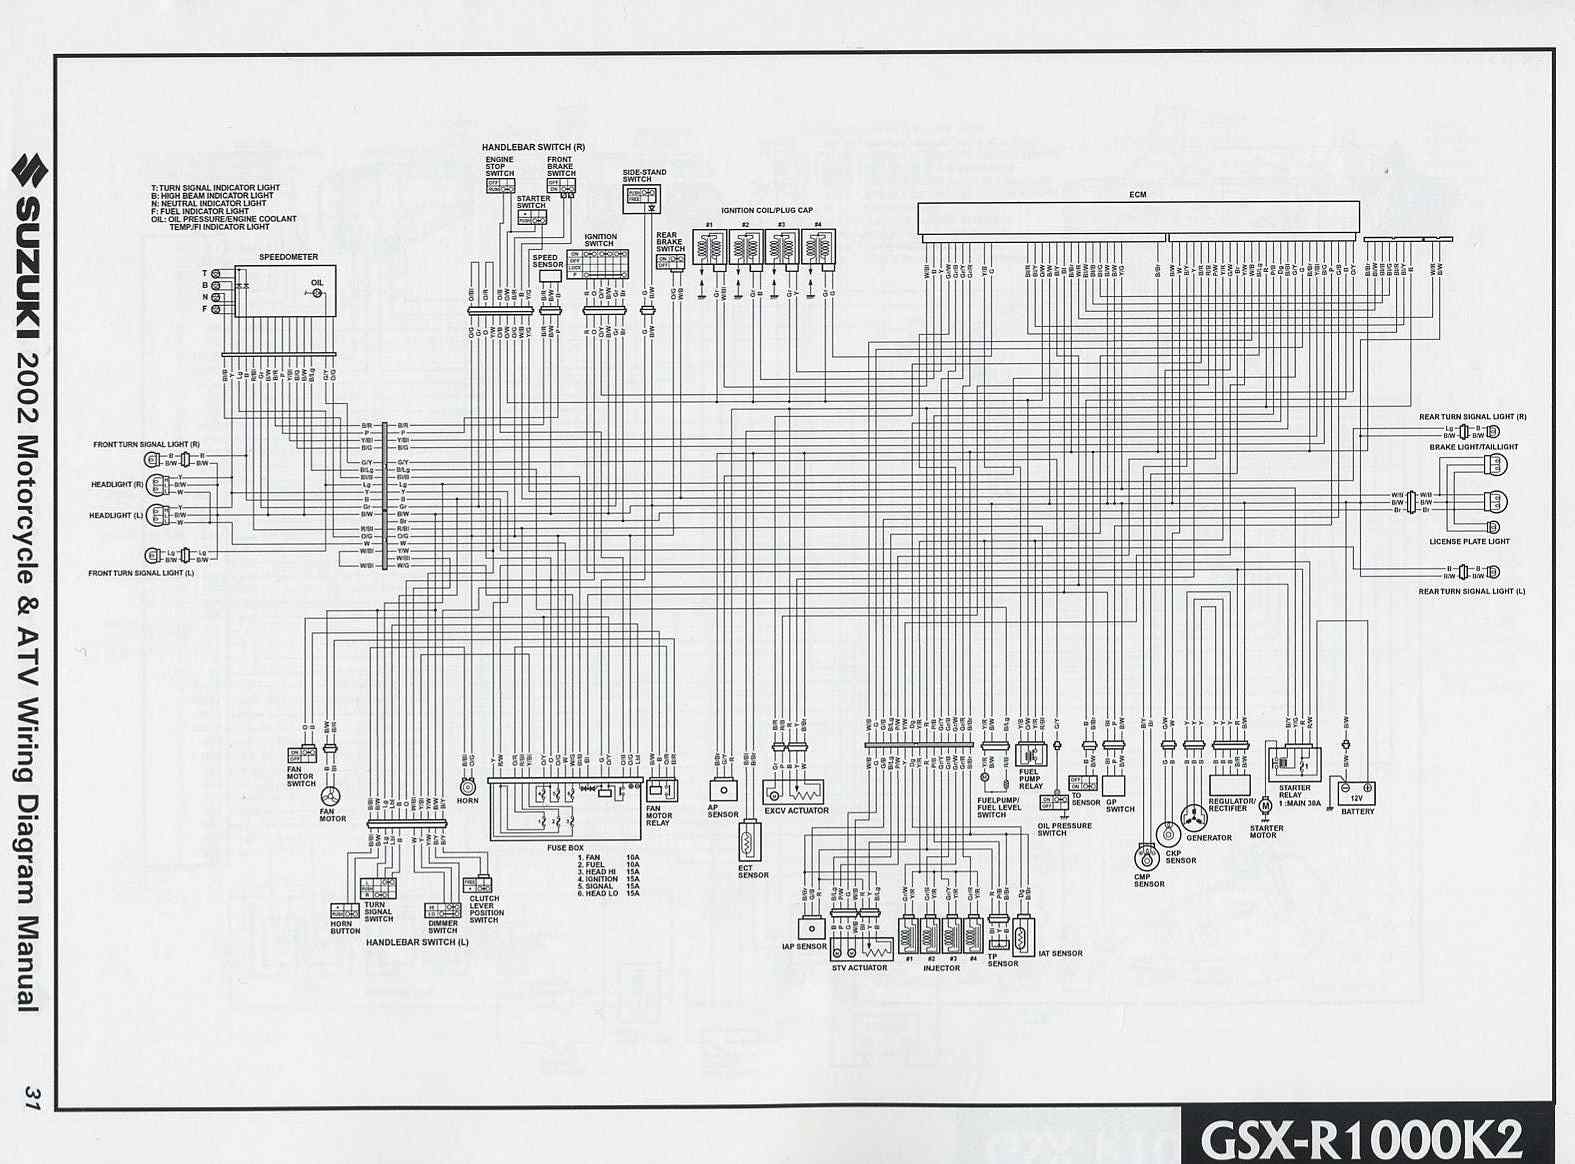 Wiring Diagram Suzuki Eiger 400 2007 Great Design Of 4x4 Honda Rubicon 500 2005 Carburetor